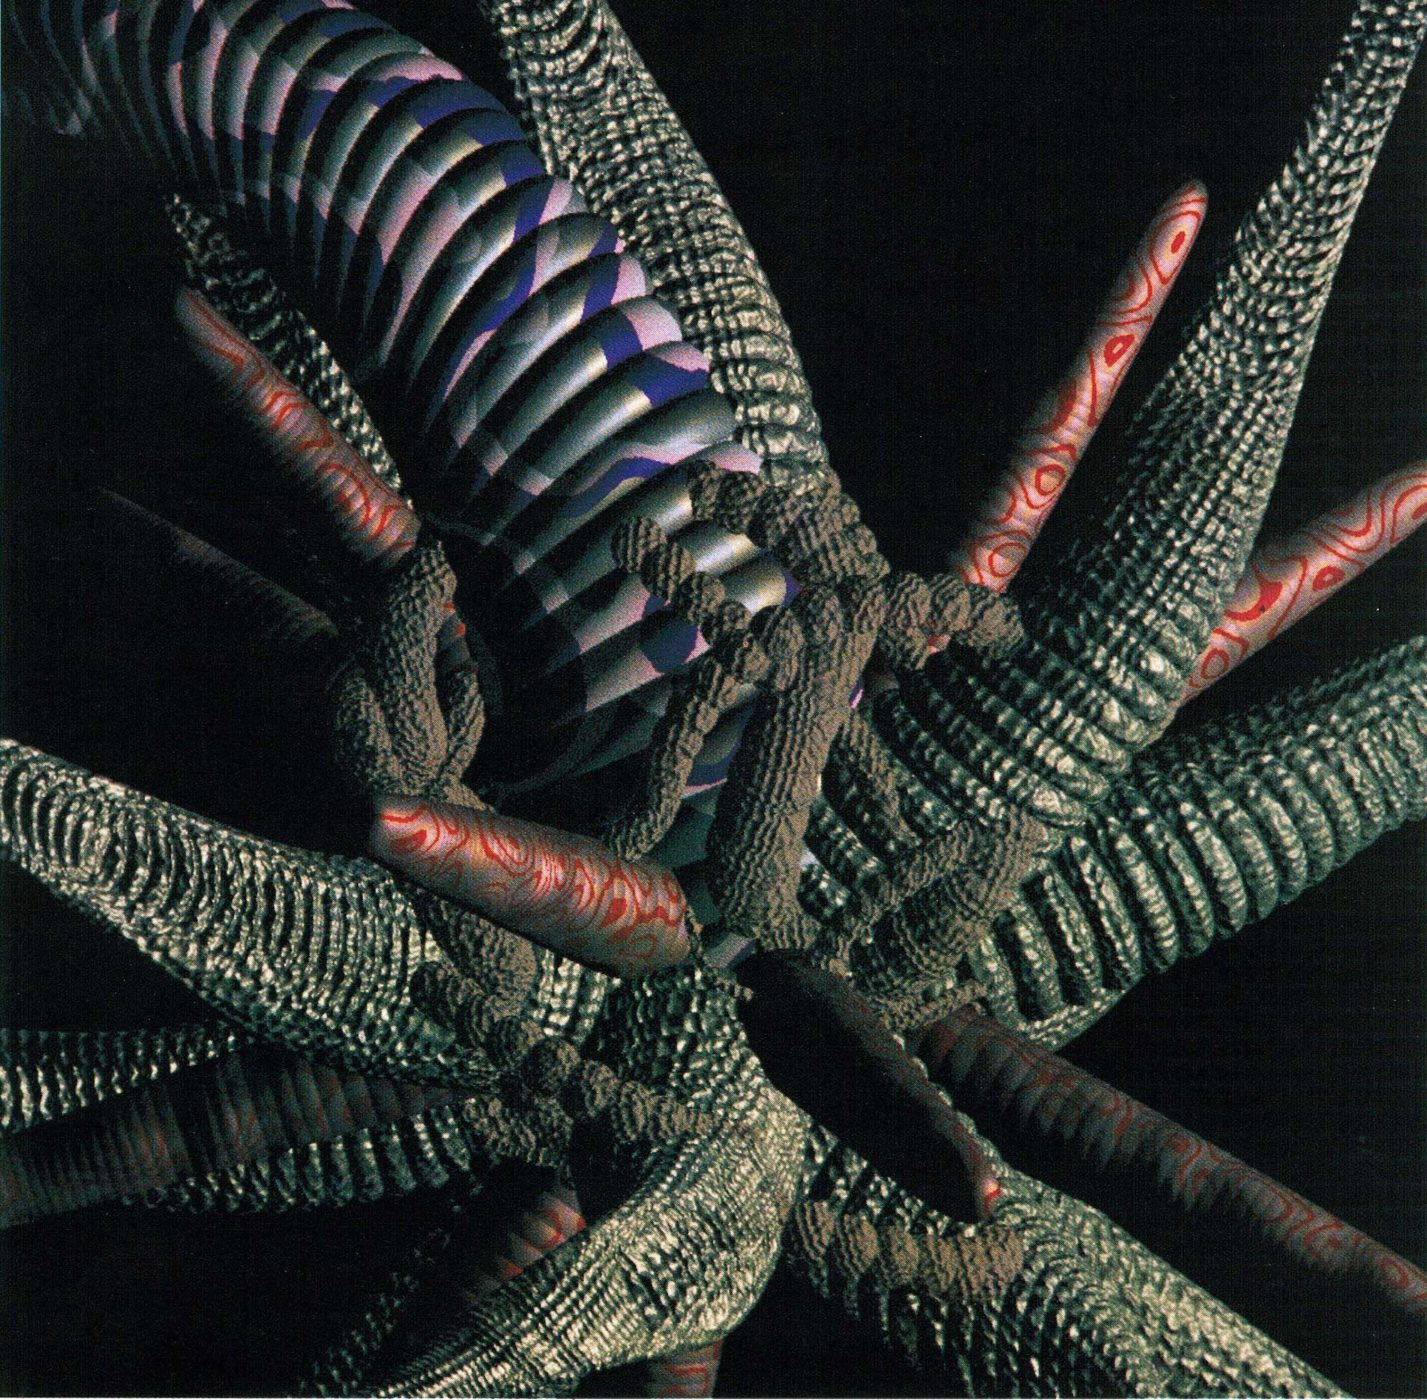 William Latham, Coiled Form, 3D animation, 1987